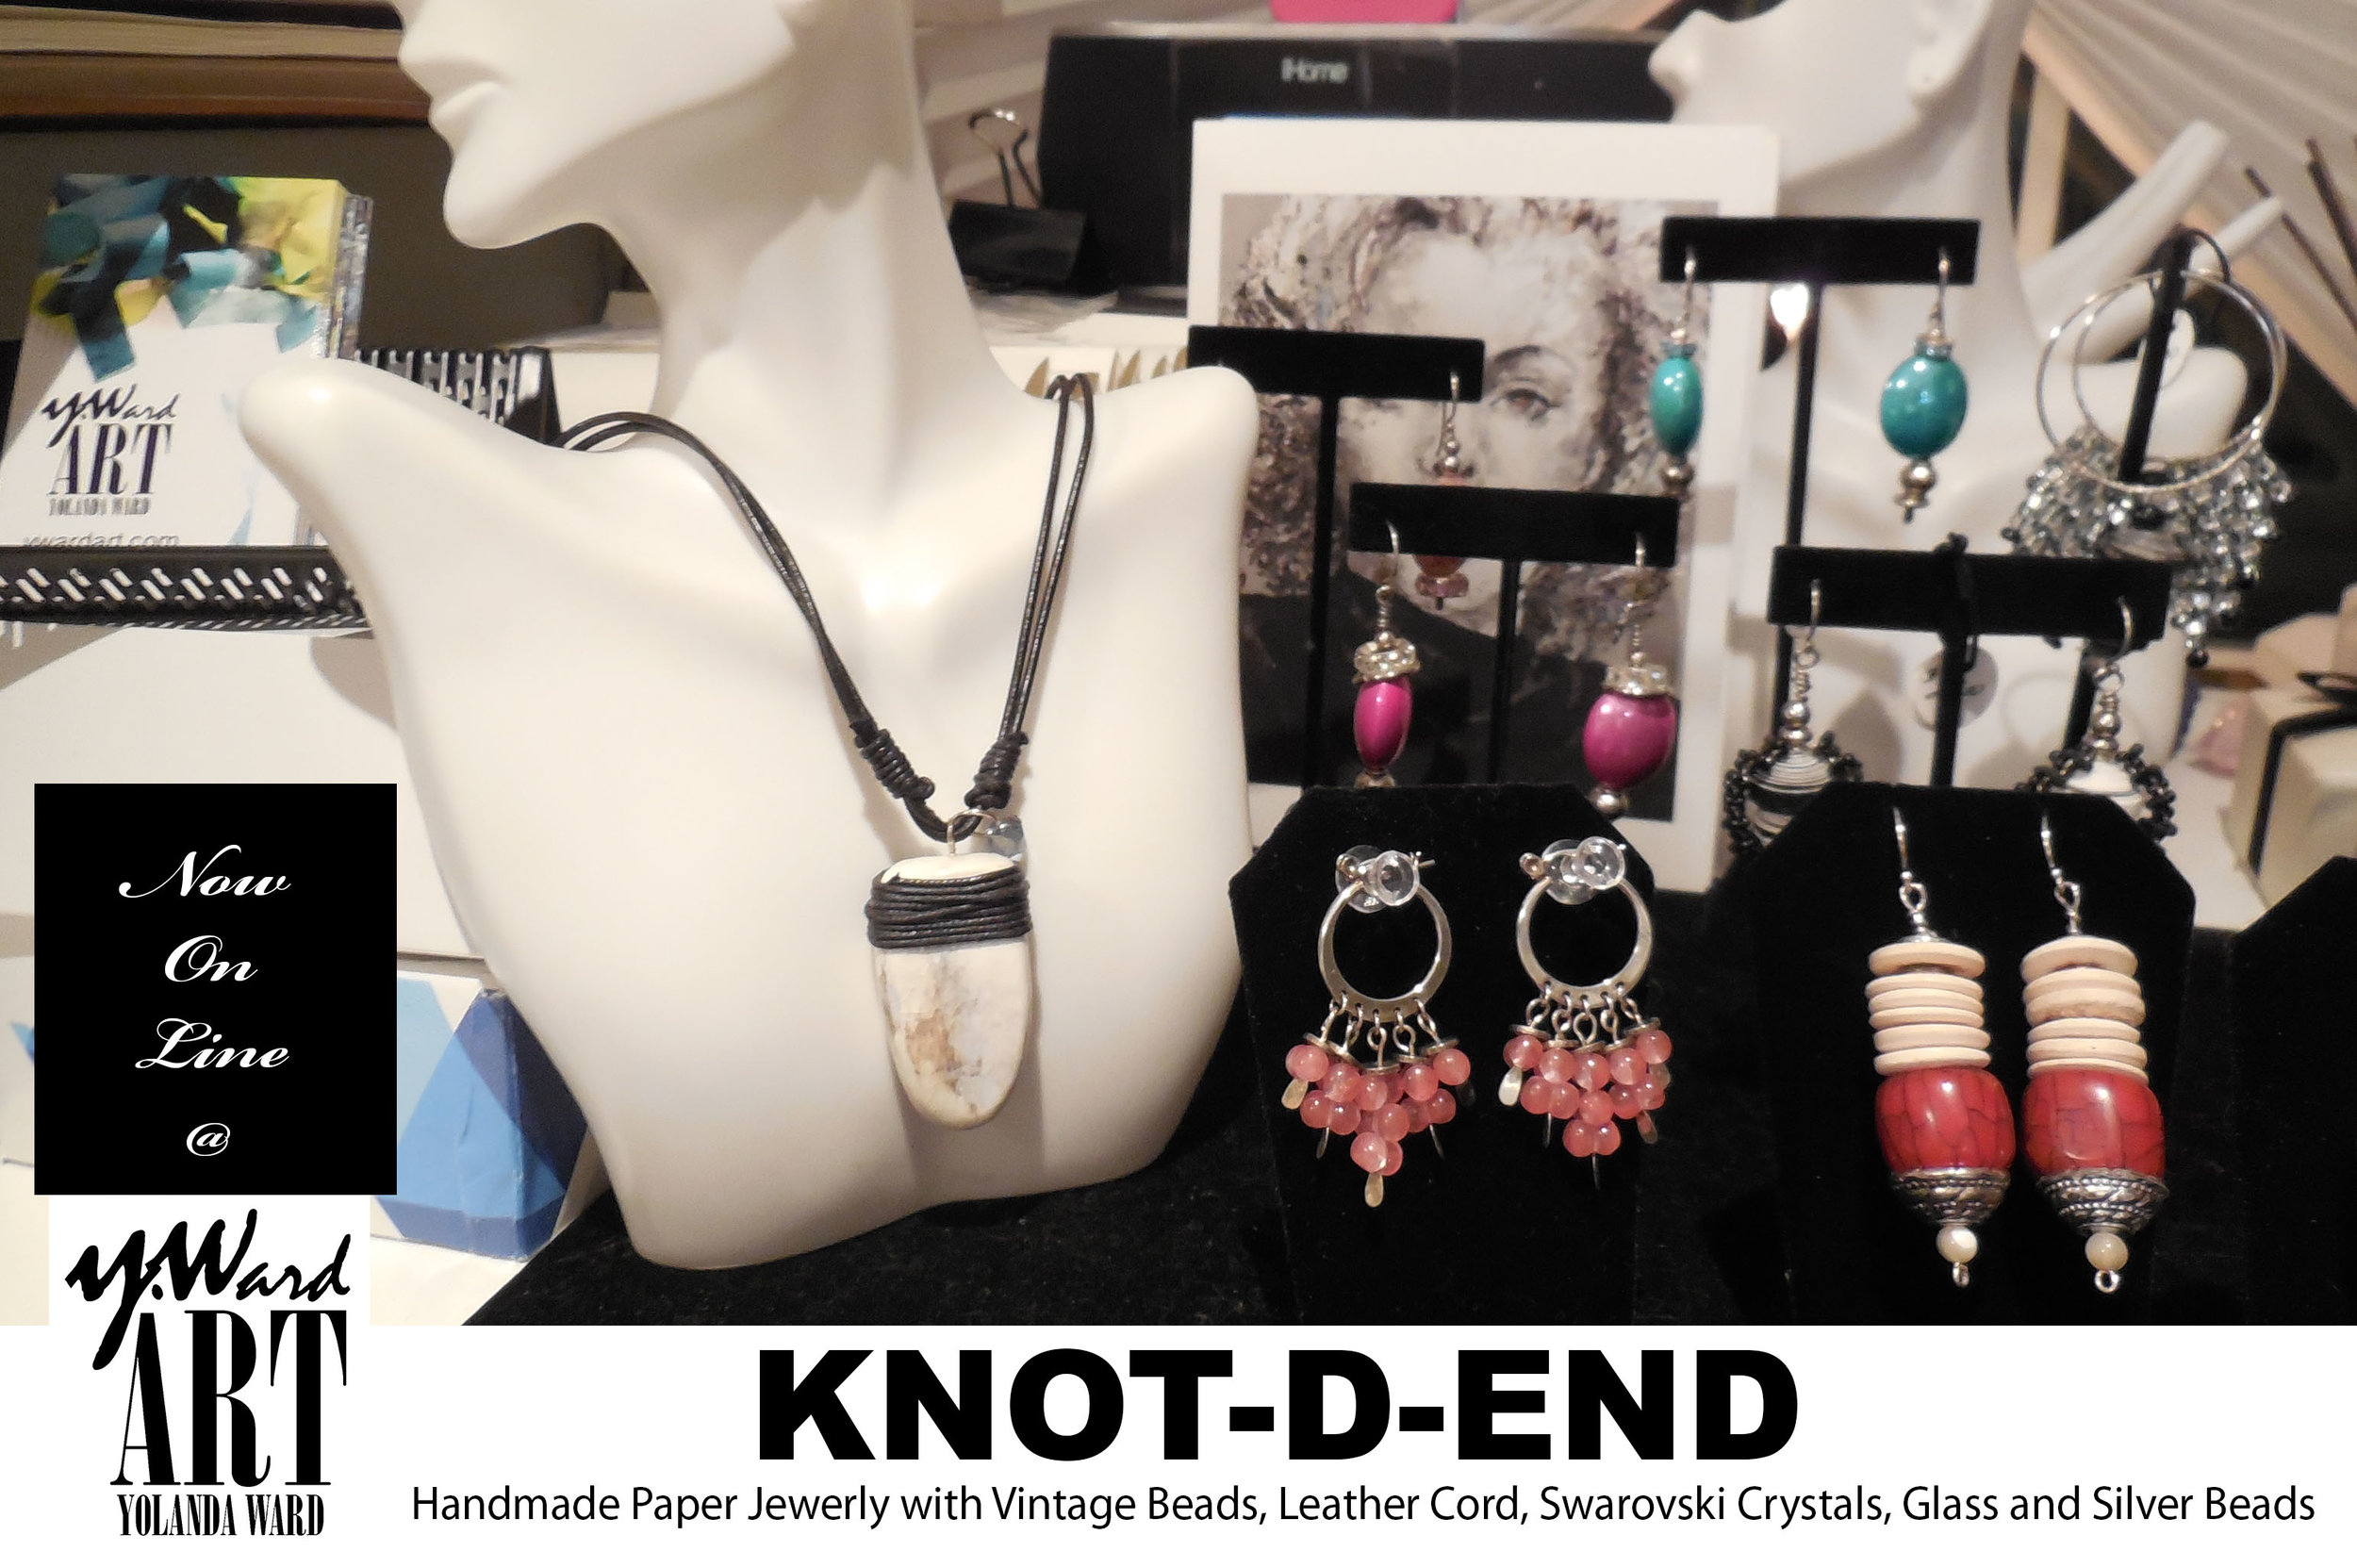 """My handmade paper jewelry line """"KNOT-D-END""""represents those of us who know an ending is really the beginning of something great! - Each piece is one of a kind, some made from rolled and/or sculpted paper. Each piece includes at least one or more accent bead, precious stone, Swarovski Crystals, vintage, seed or woven glass beads that complement each design.If you're looking for something different that represents you, shop here!"""